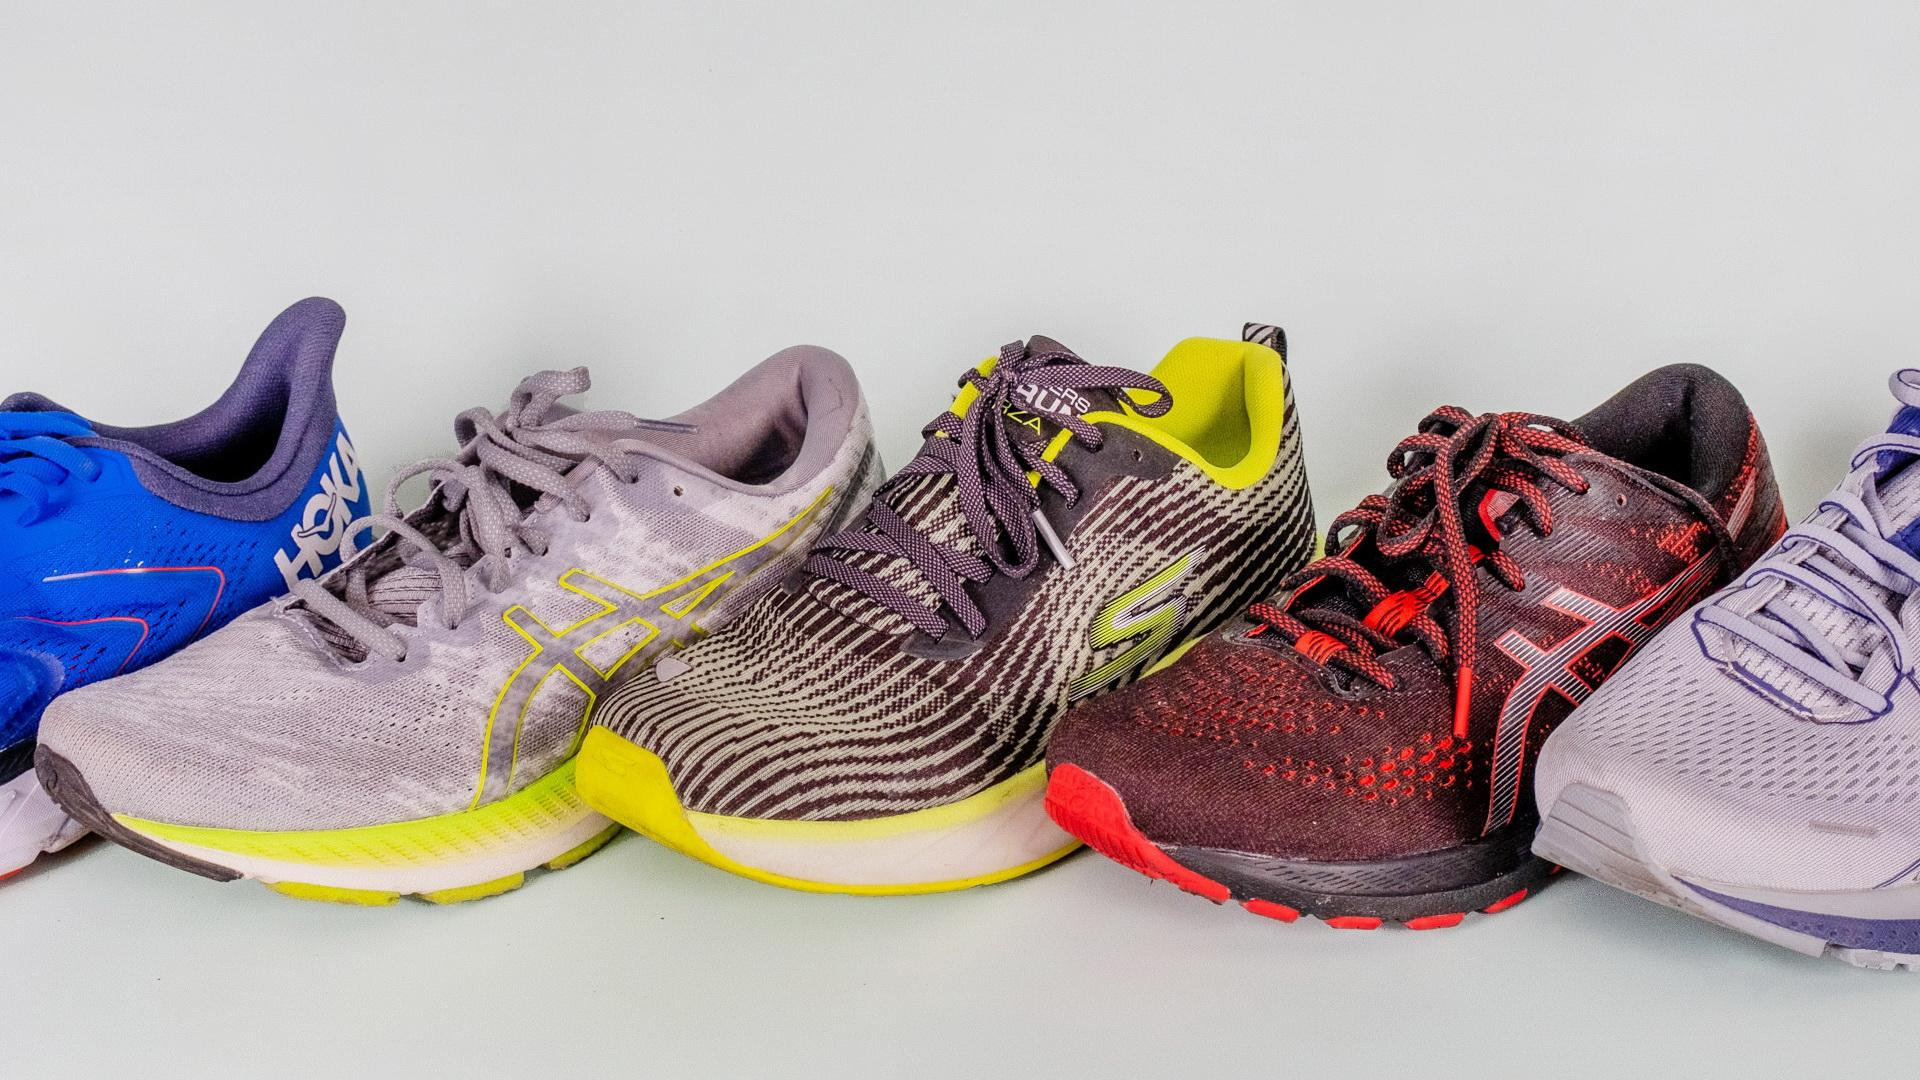 10 Best Running Shoes For Plantar Fasciitis in 2021